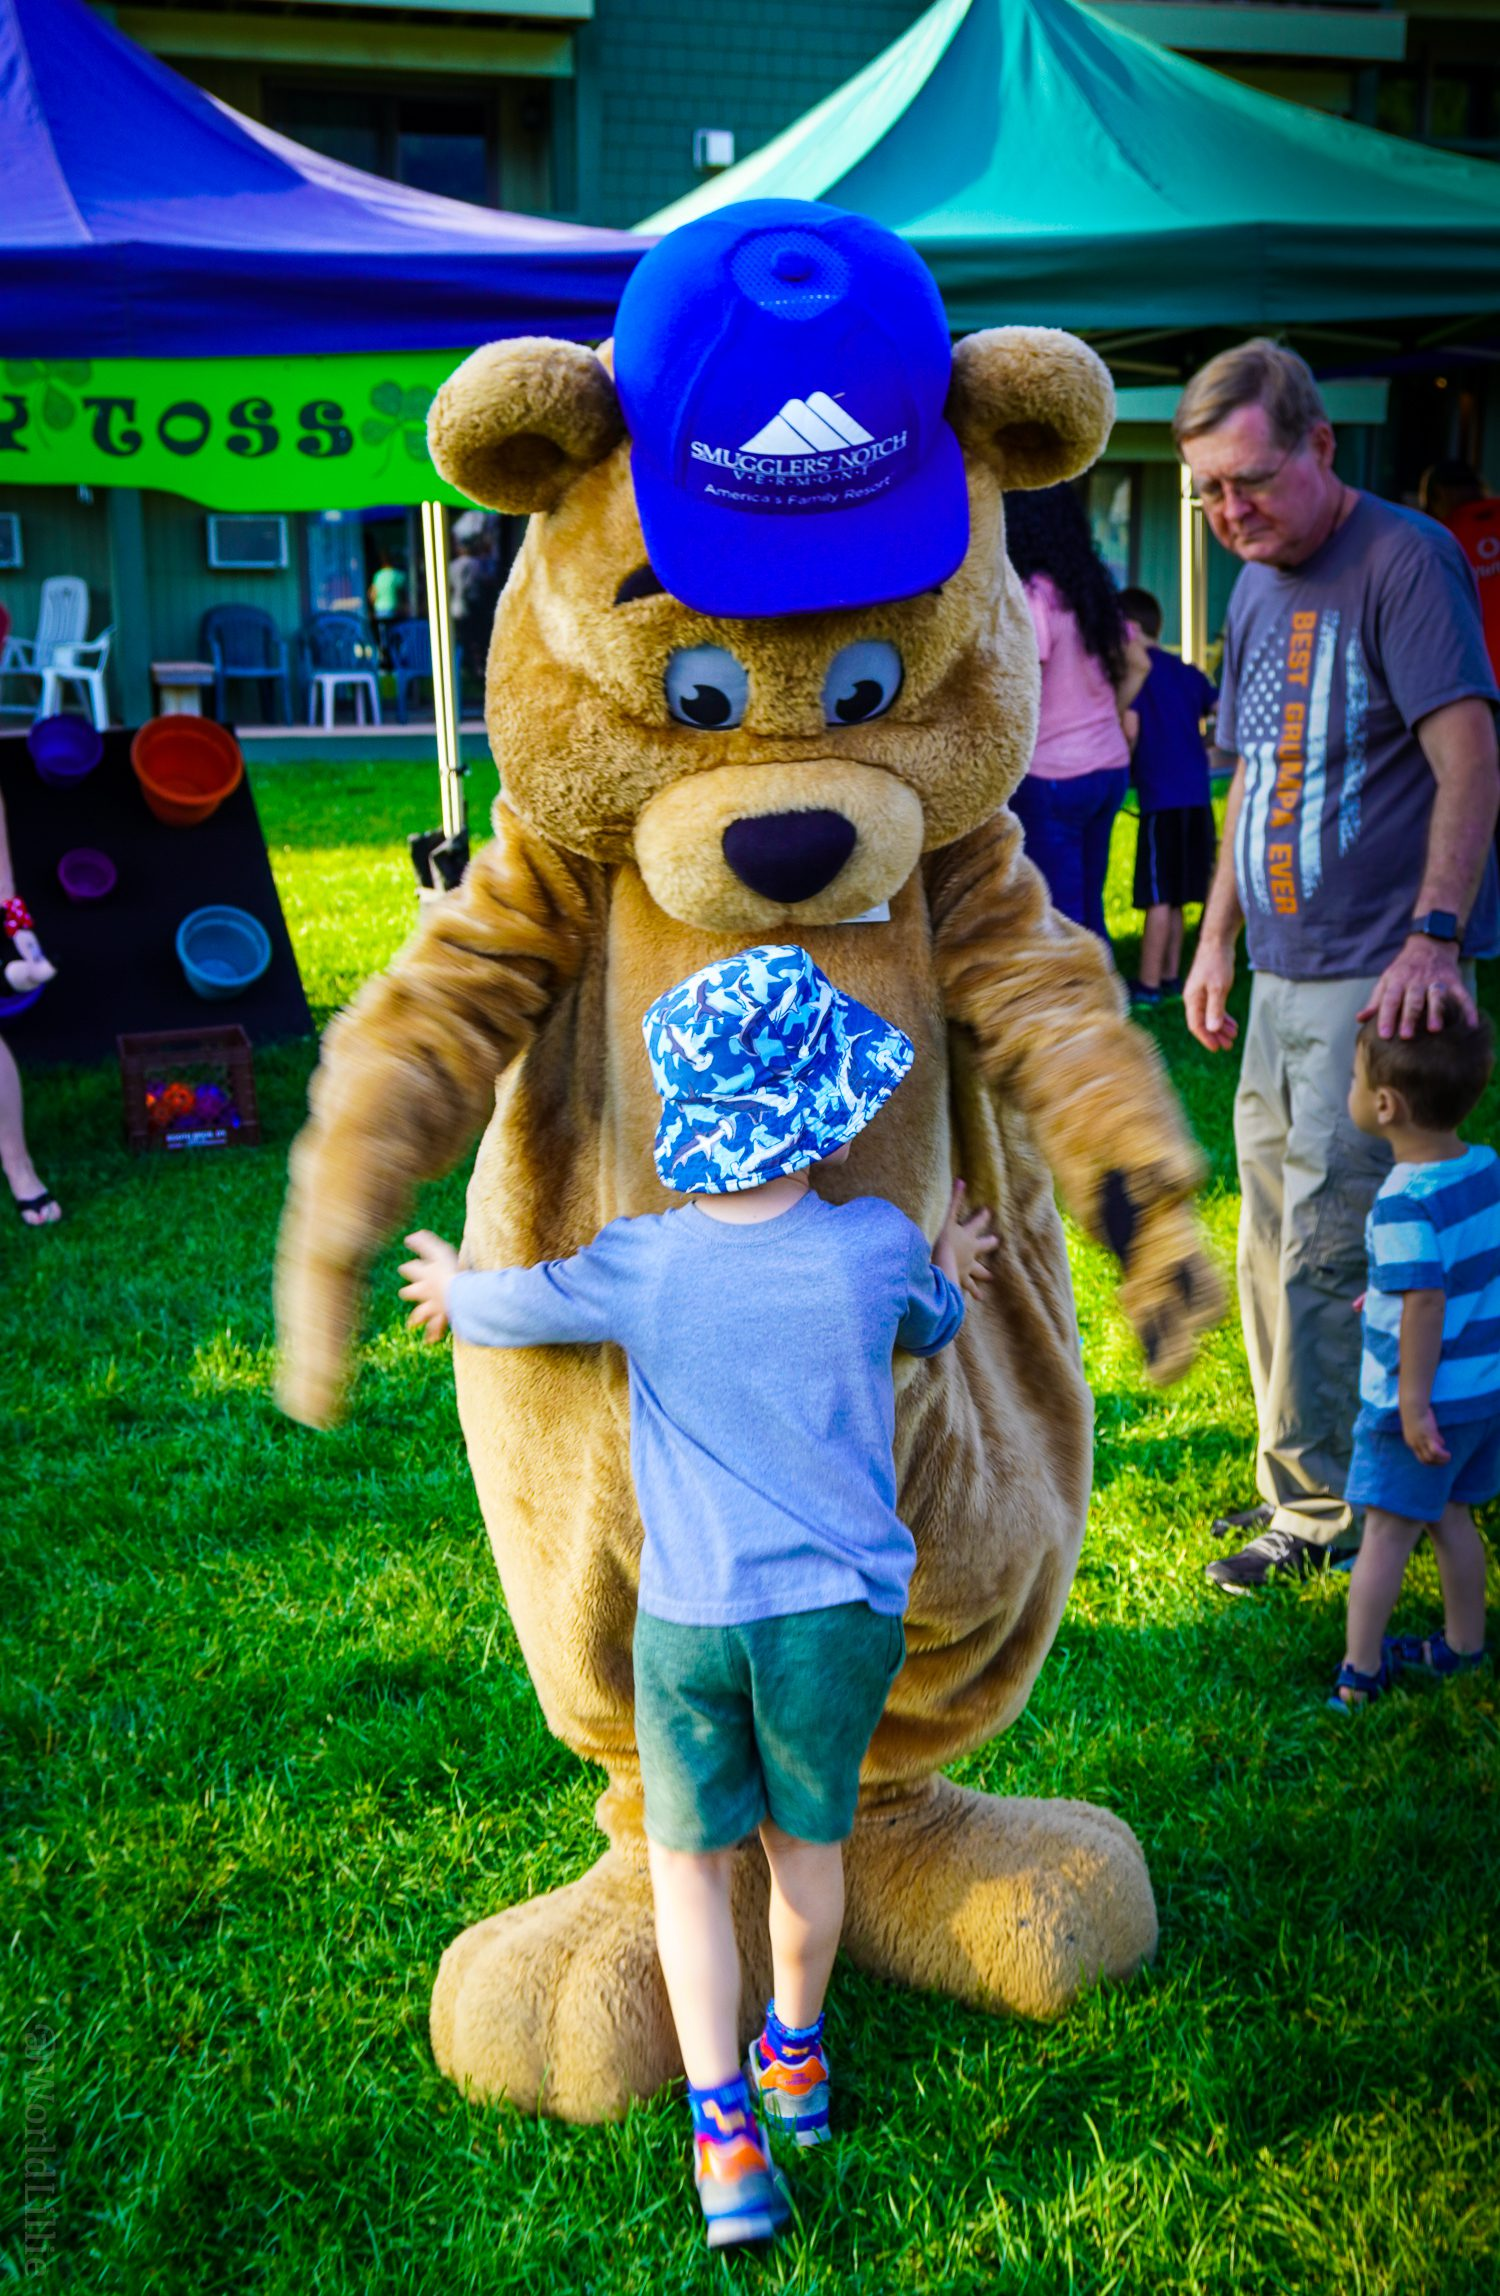 Billy Bob Bear is one of the lovable mascots walking around Smuggs for hugs.